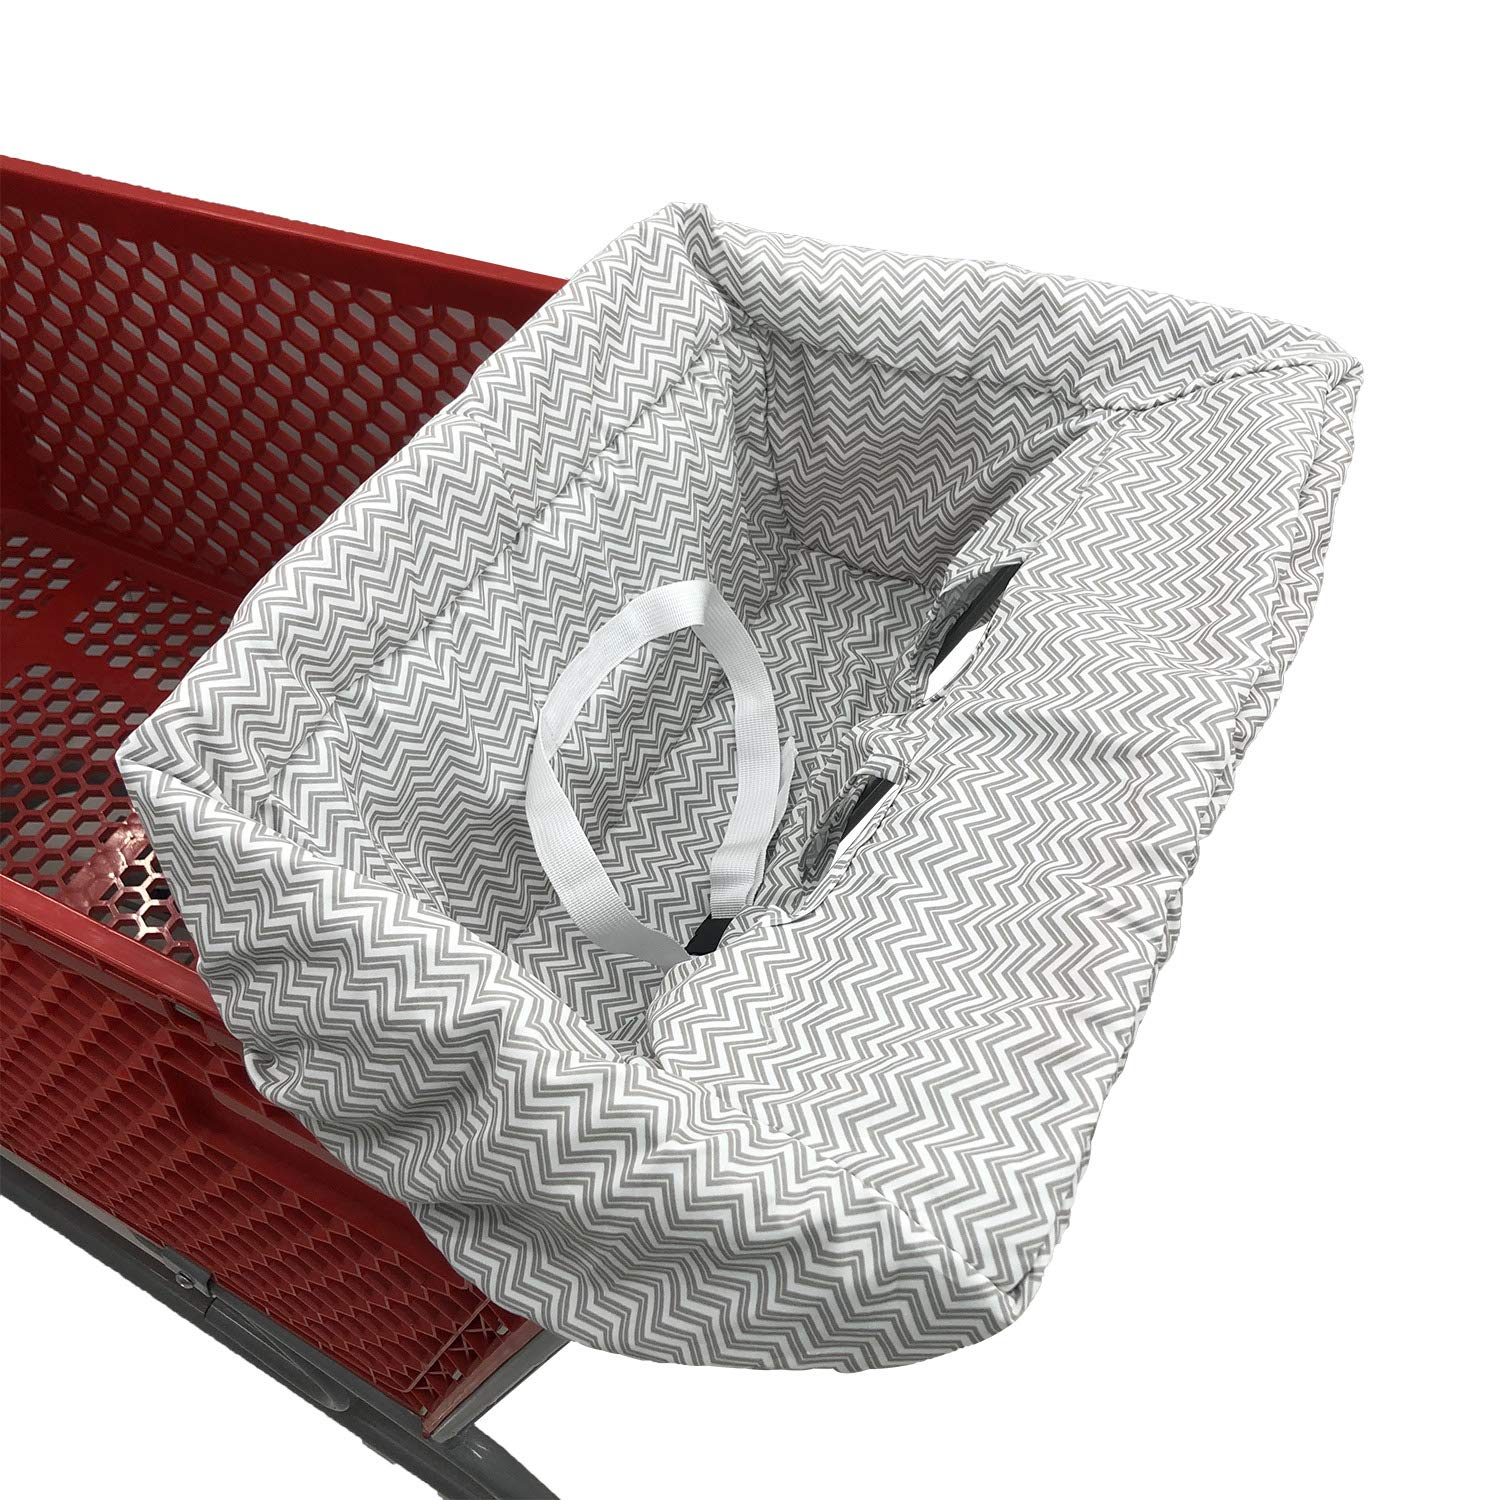 Portable Shopping Cart Cover | High Chair and Grocery Cart Covers for Babies, Kids, Infants & Toddlers ✮ Includes Free Carry Bag ✮ (Gray Chevron)